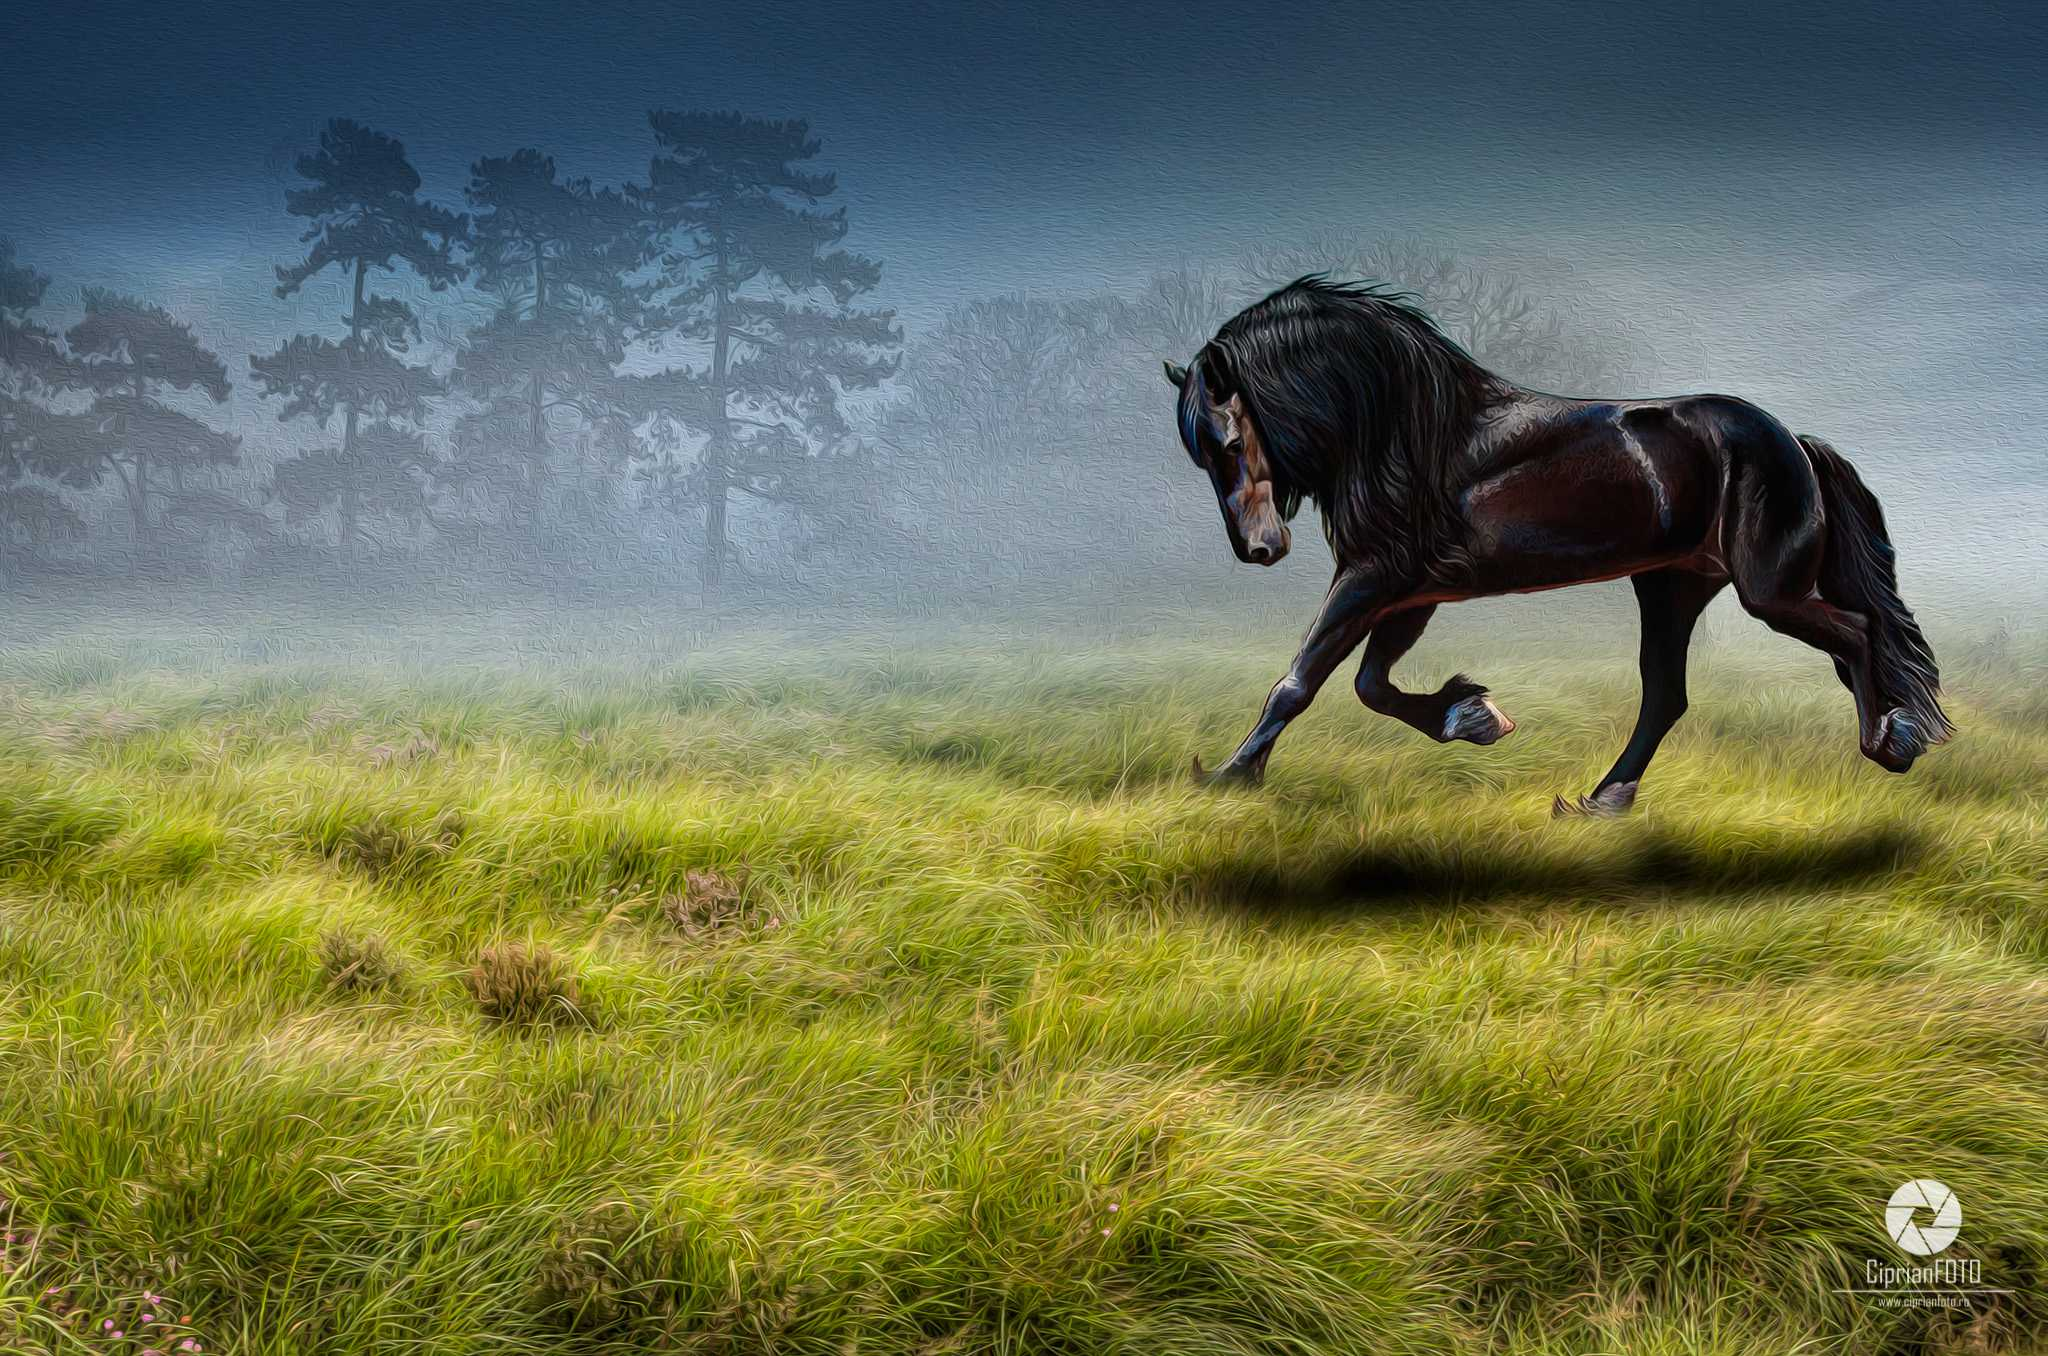 Horse Power, Photoshop Manipulation Tutorial, CiprianFOTO